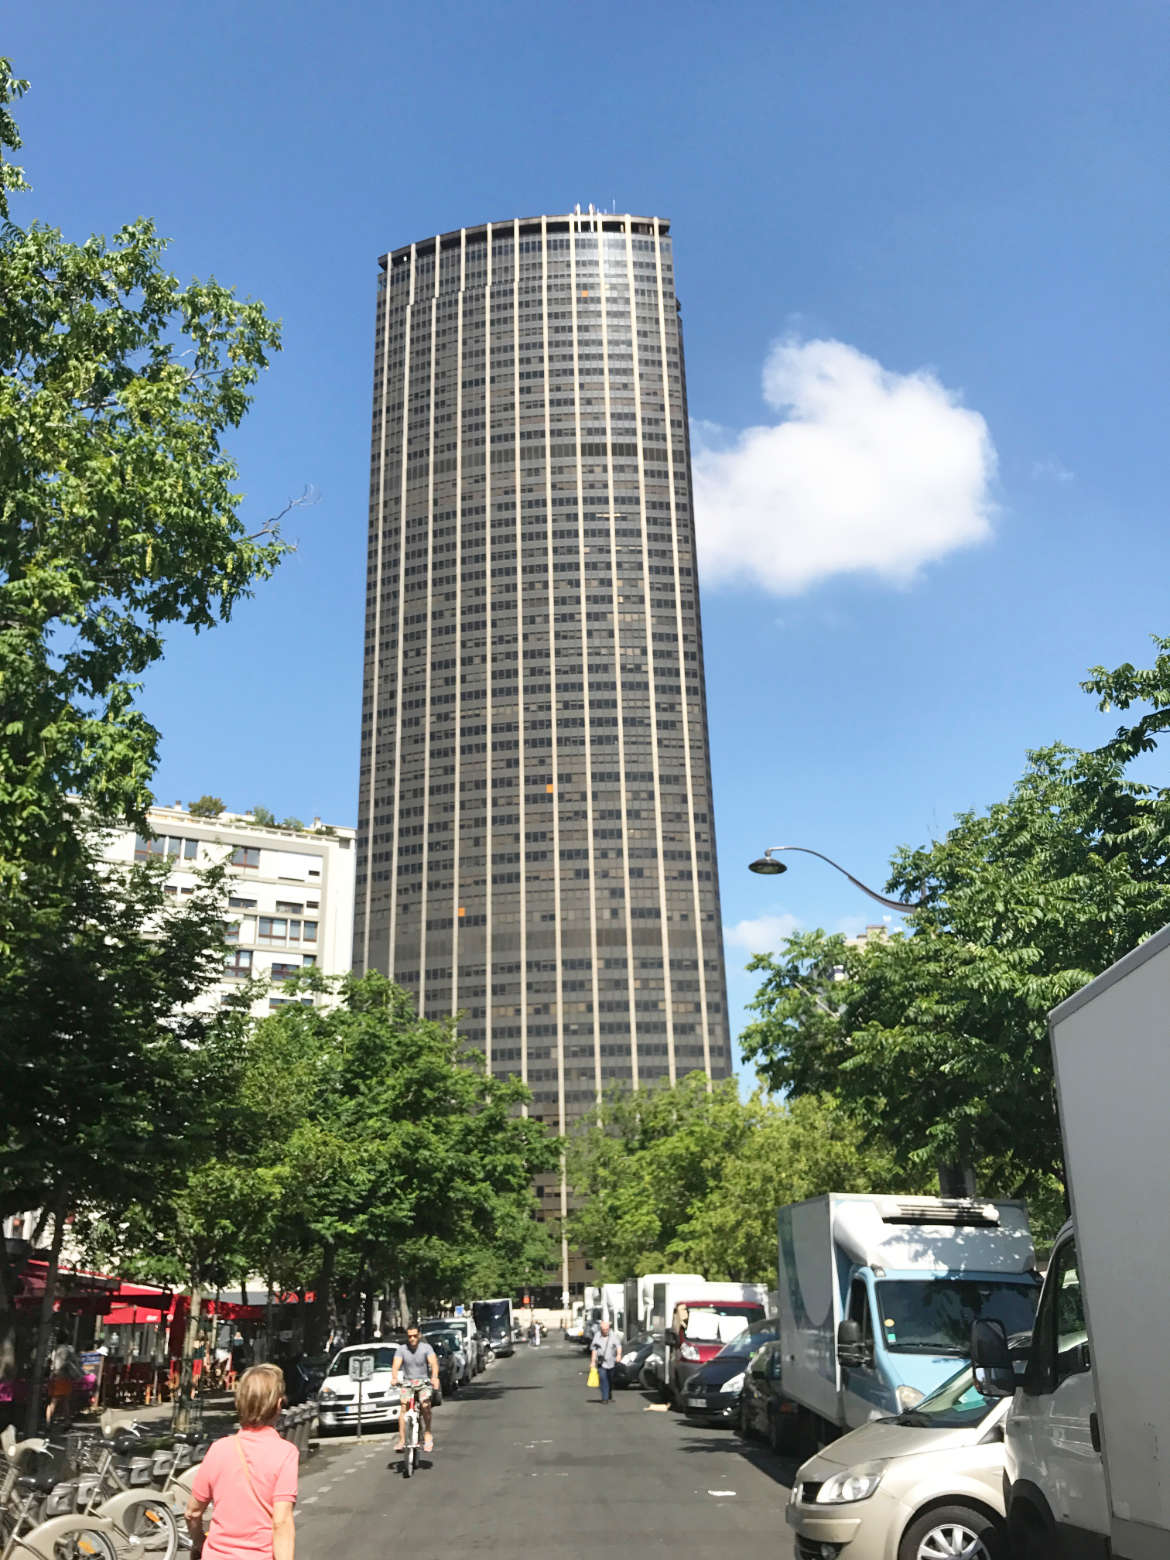 Der Montparnasse Tower